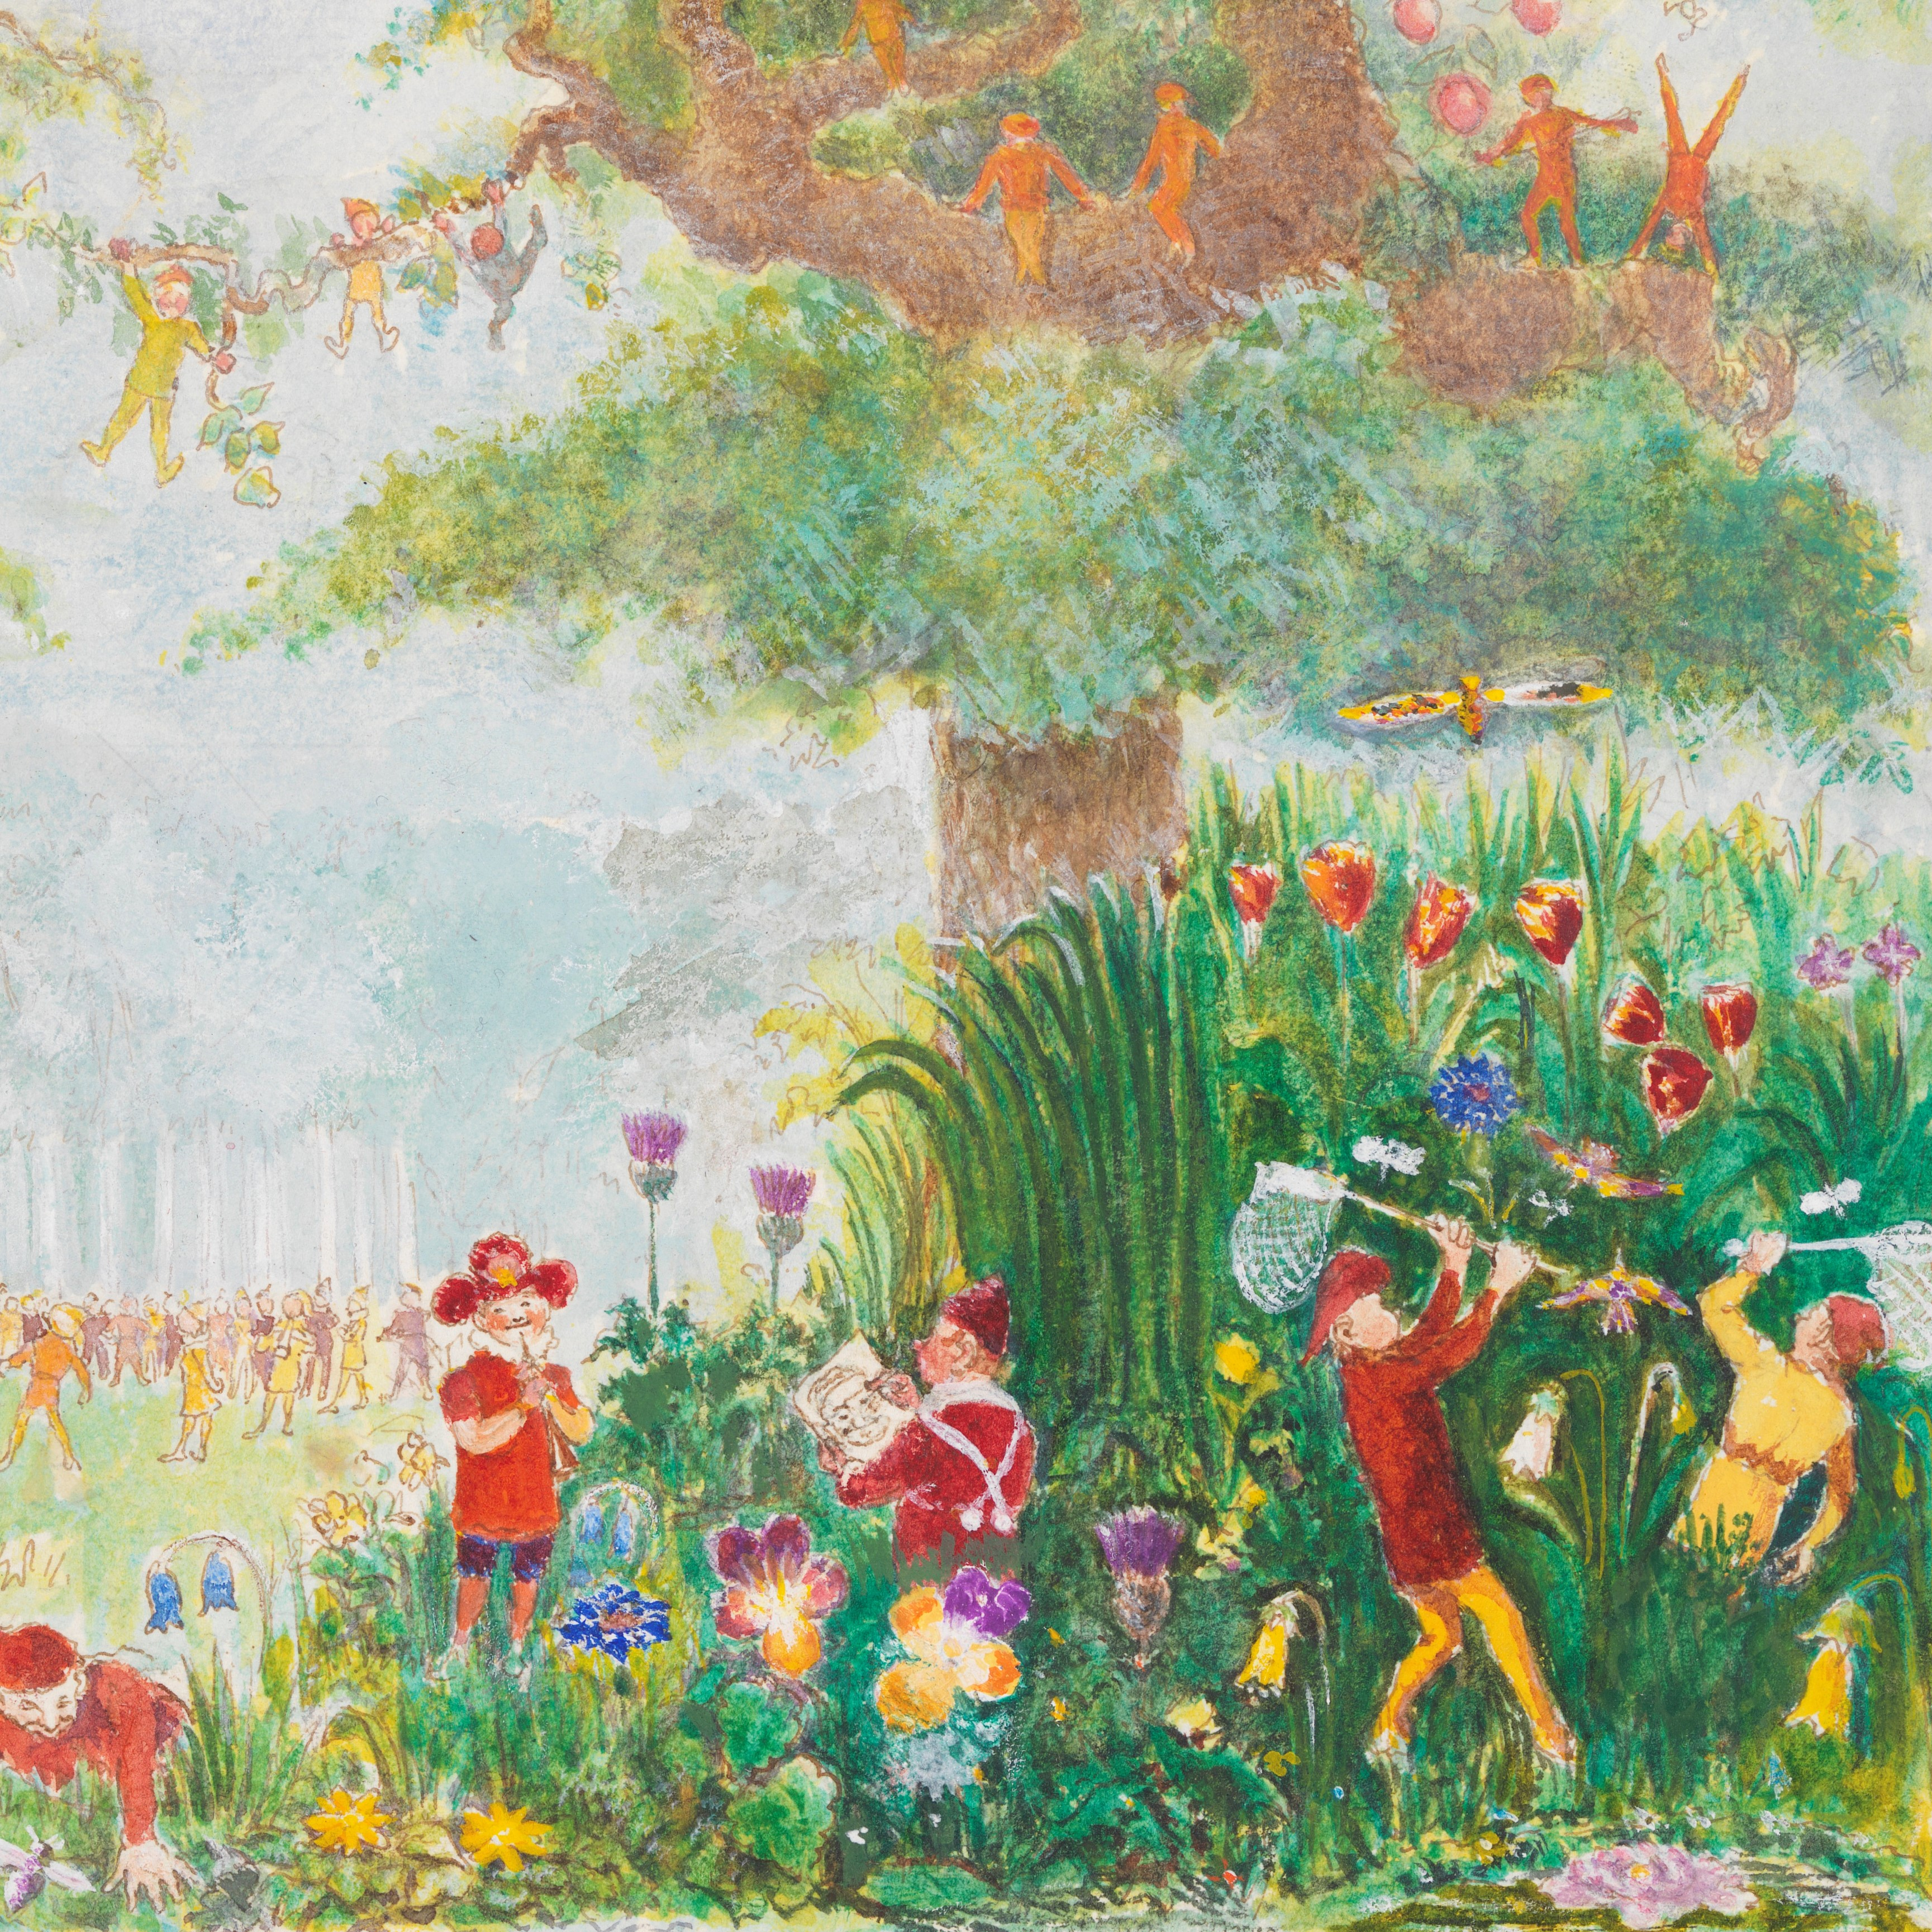 Elves playing in a forest scene